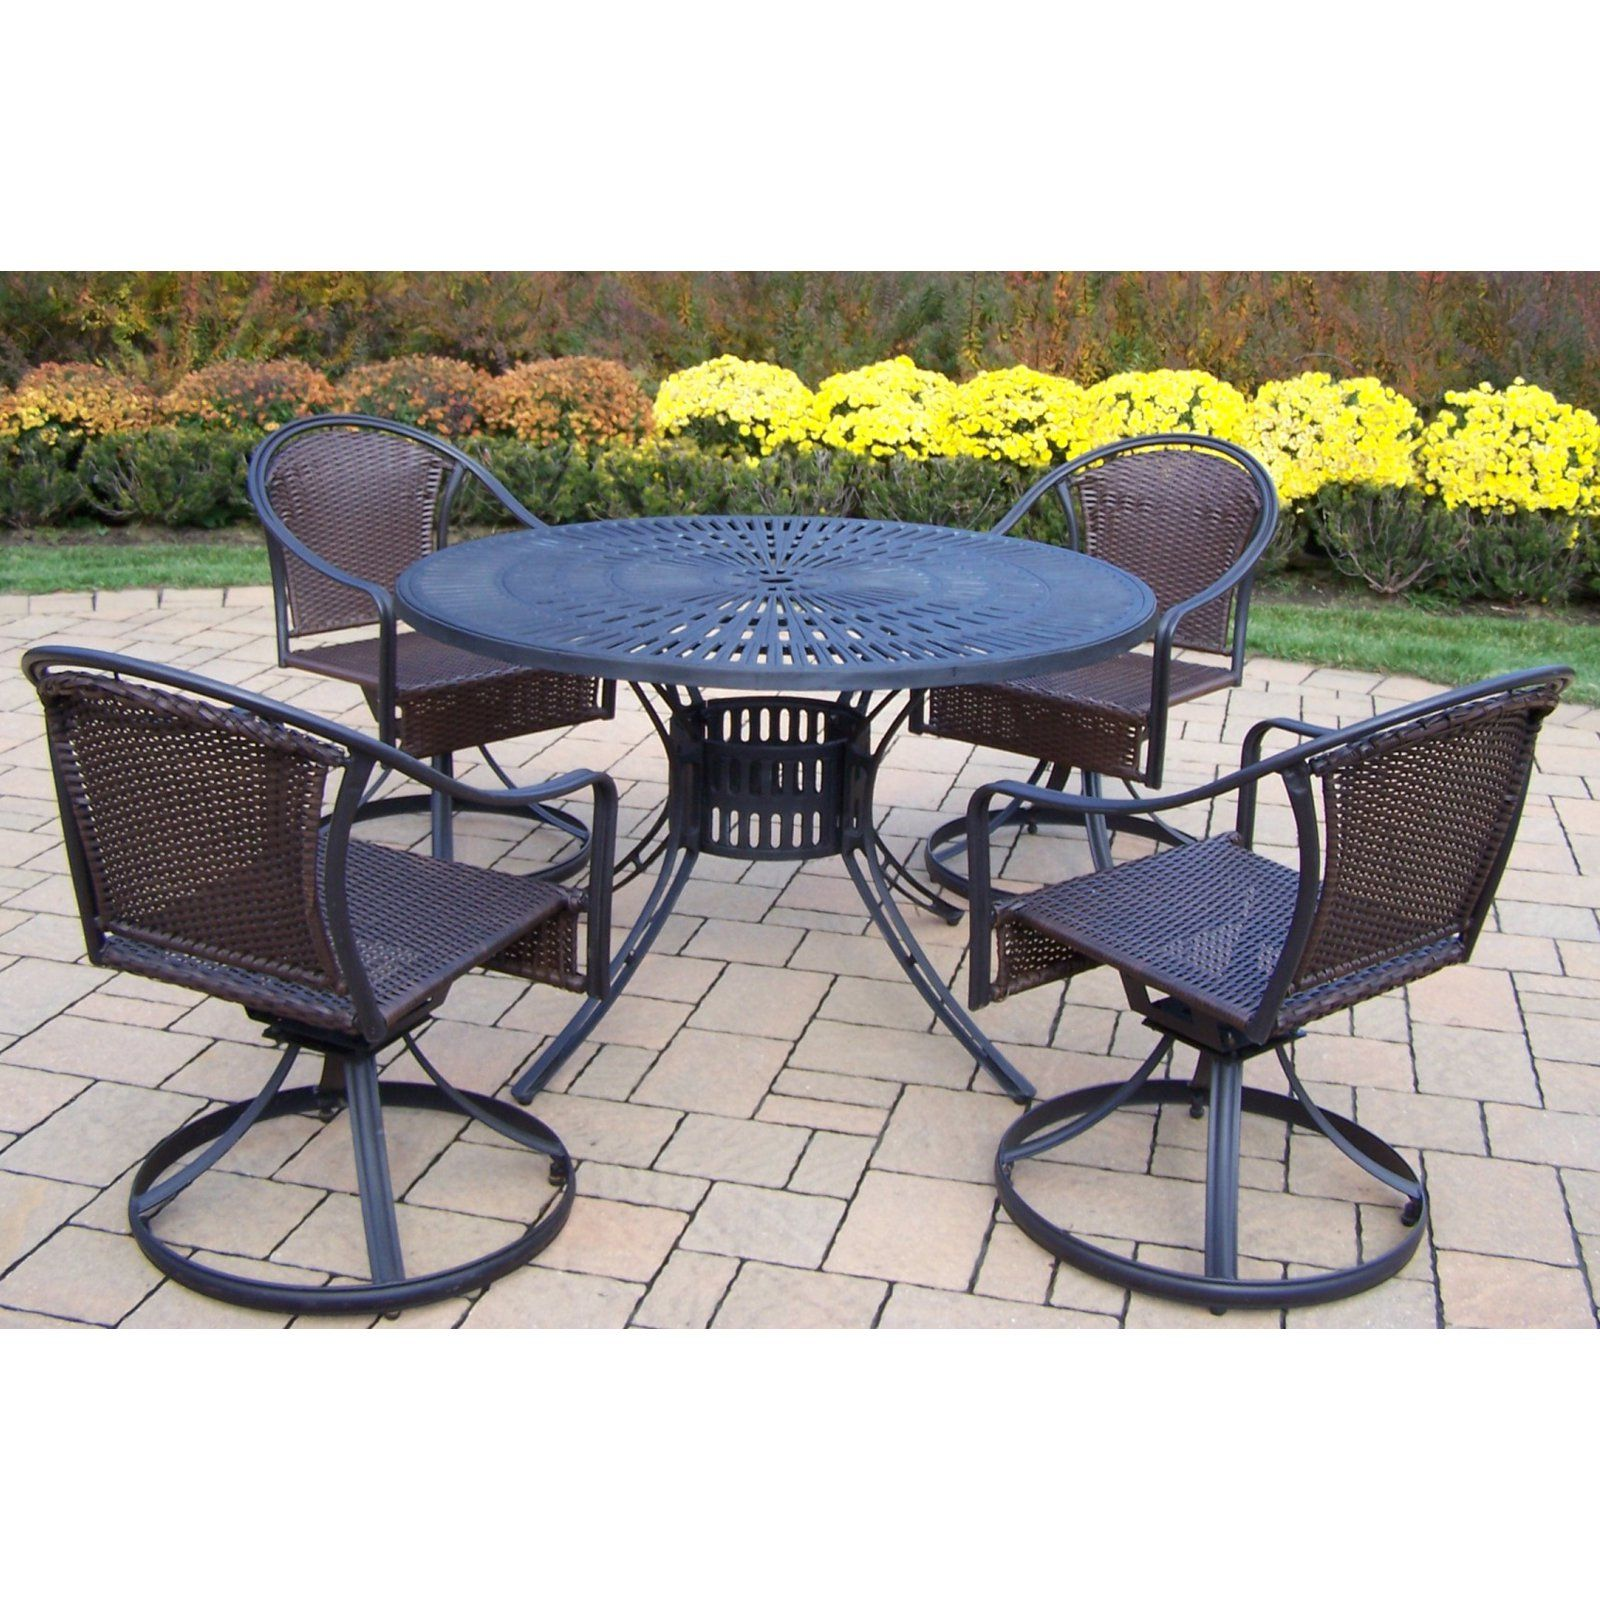 Outdoor Oakland Living Sunray Tuscany 48 in. Patio Dining Set with Swivel Chairs - 2137-90079-S-5-BK